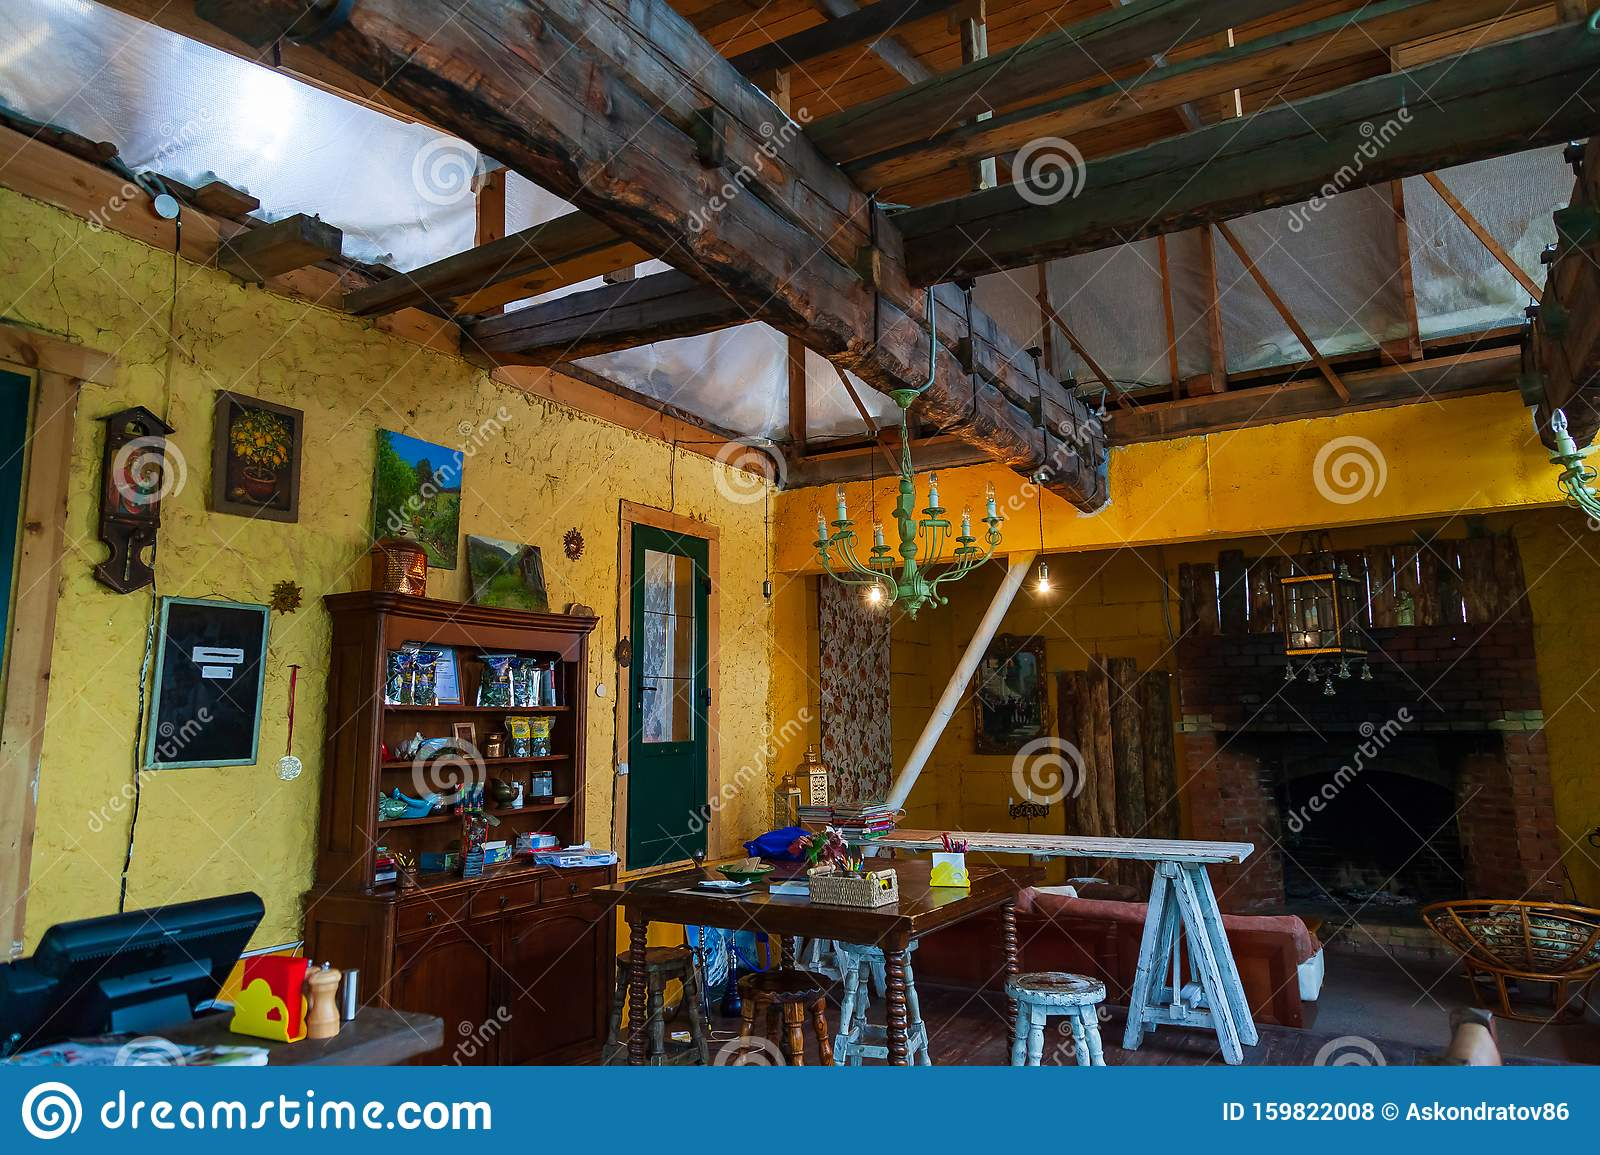 Cafe Interior In Retro Vintage Style With Colored Old Things Wooden Table And Chairs And Roof Interior Design Editorial Stock Photo Image Of Decoration Architecture 159822008